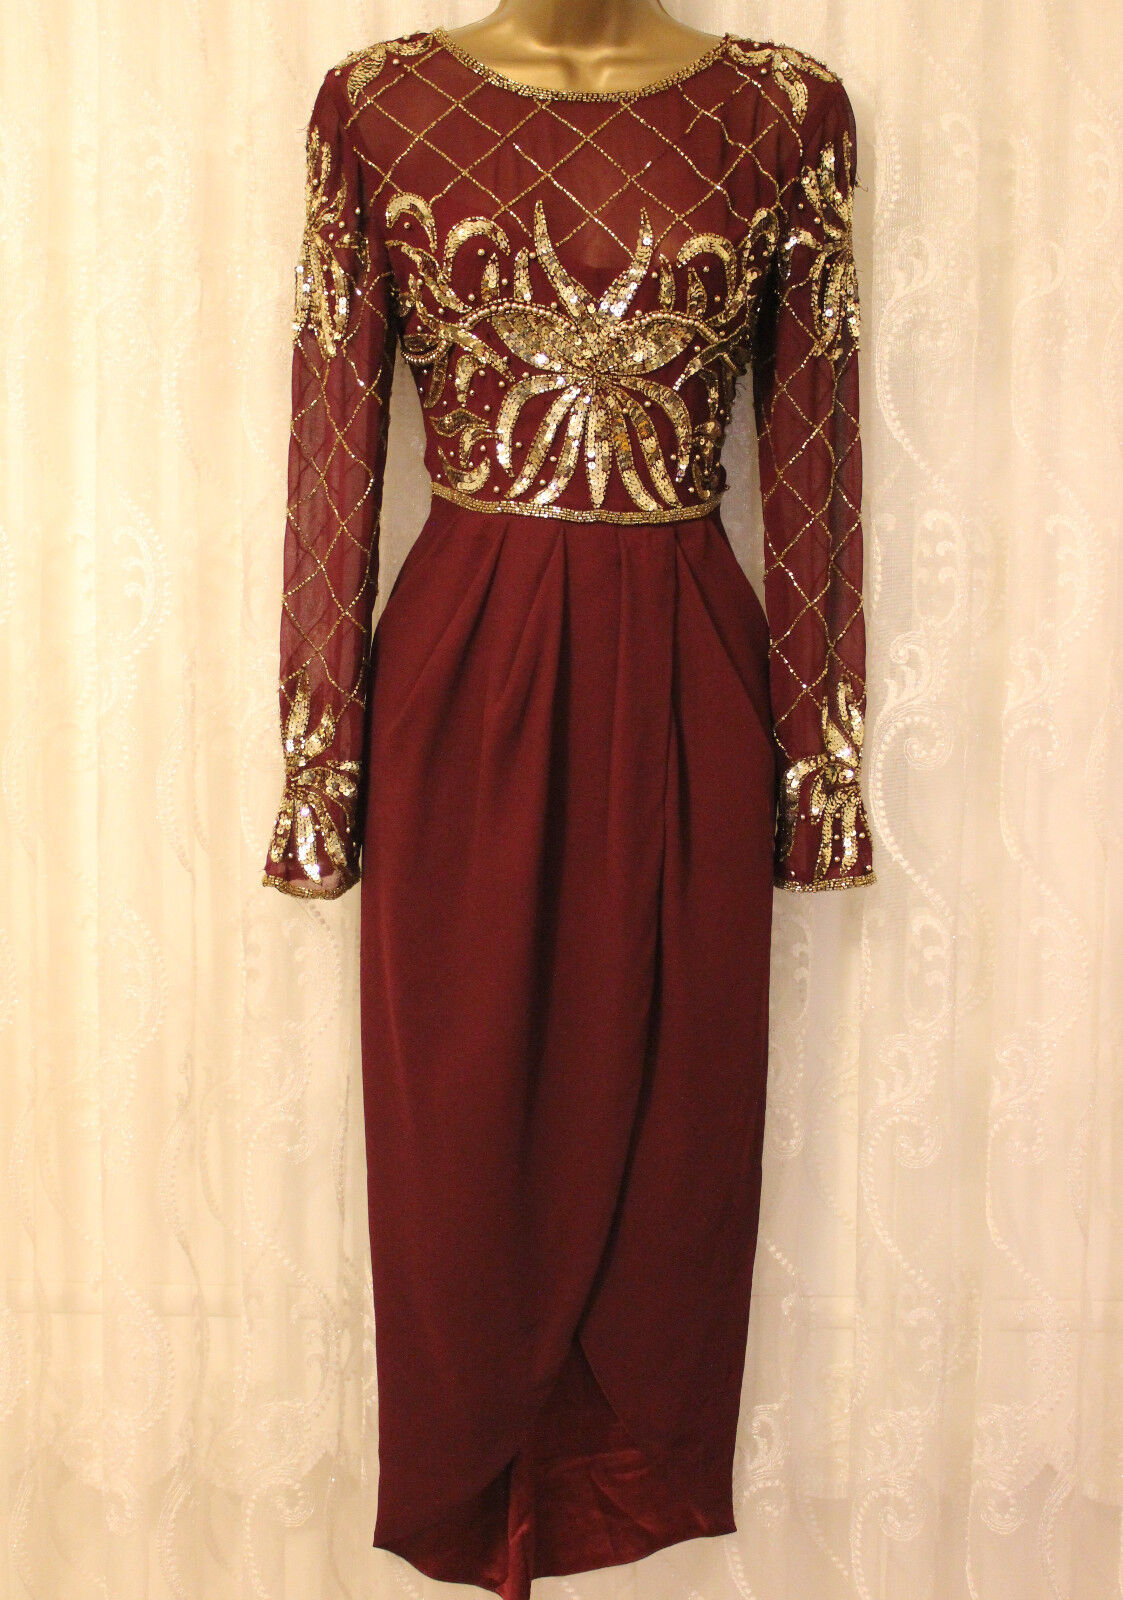 Virgos Lounge Burgundy rot Wrap Long Sleeve Embellished Party Midi Dress 6 34